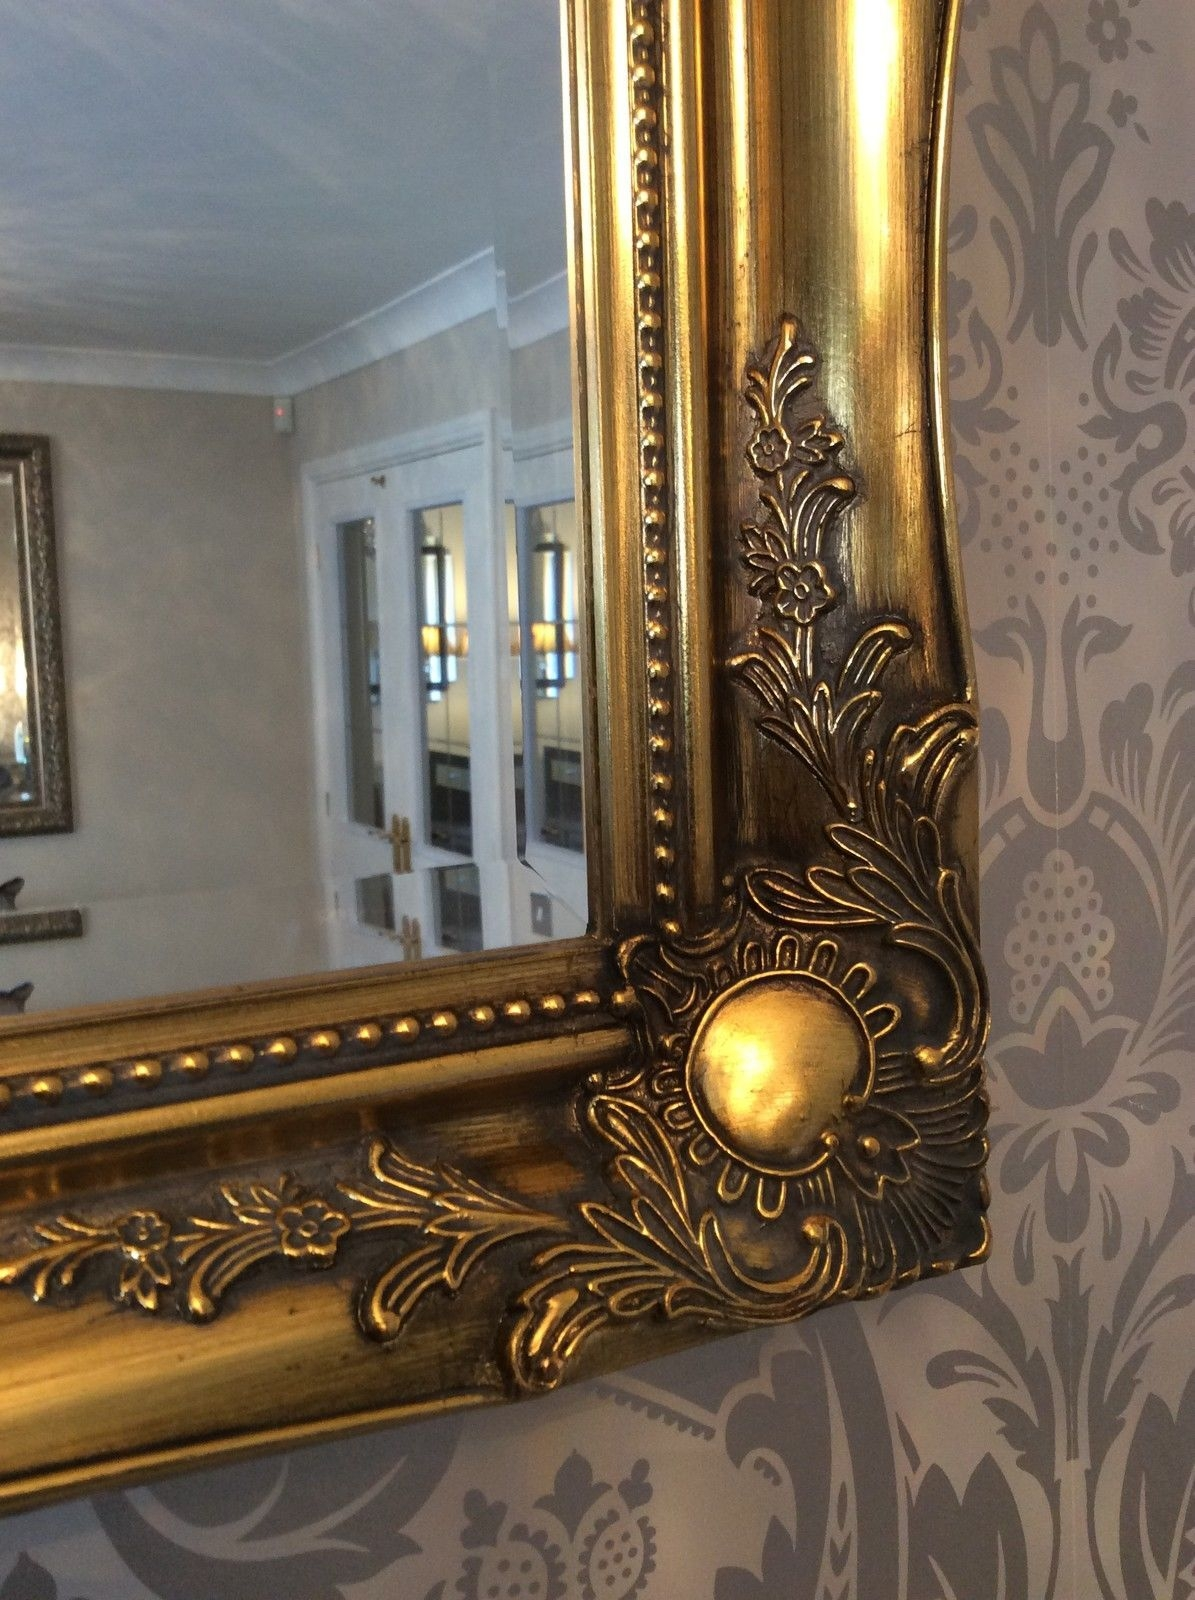 Antique Gold Shab Chic Ornate Decorative Over Mantle Gilt Wall Throughout Gold Shabby Chic Mirror (View 10 of 15)